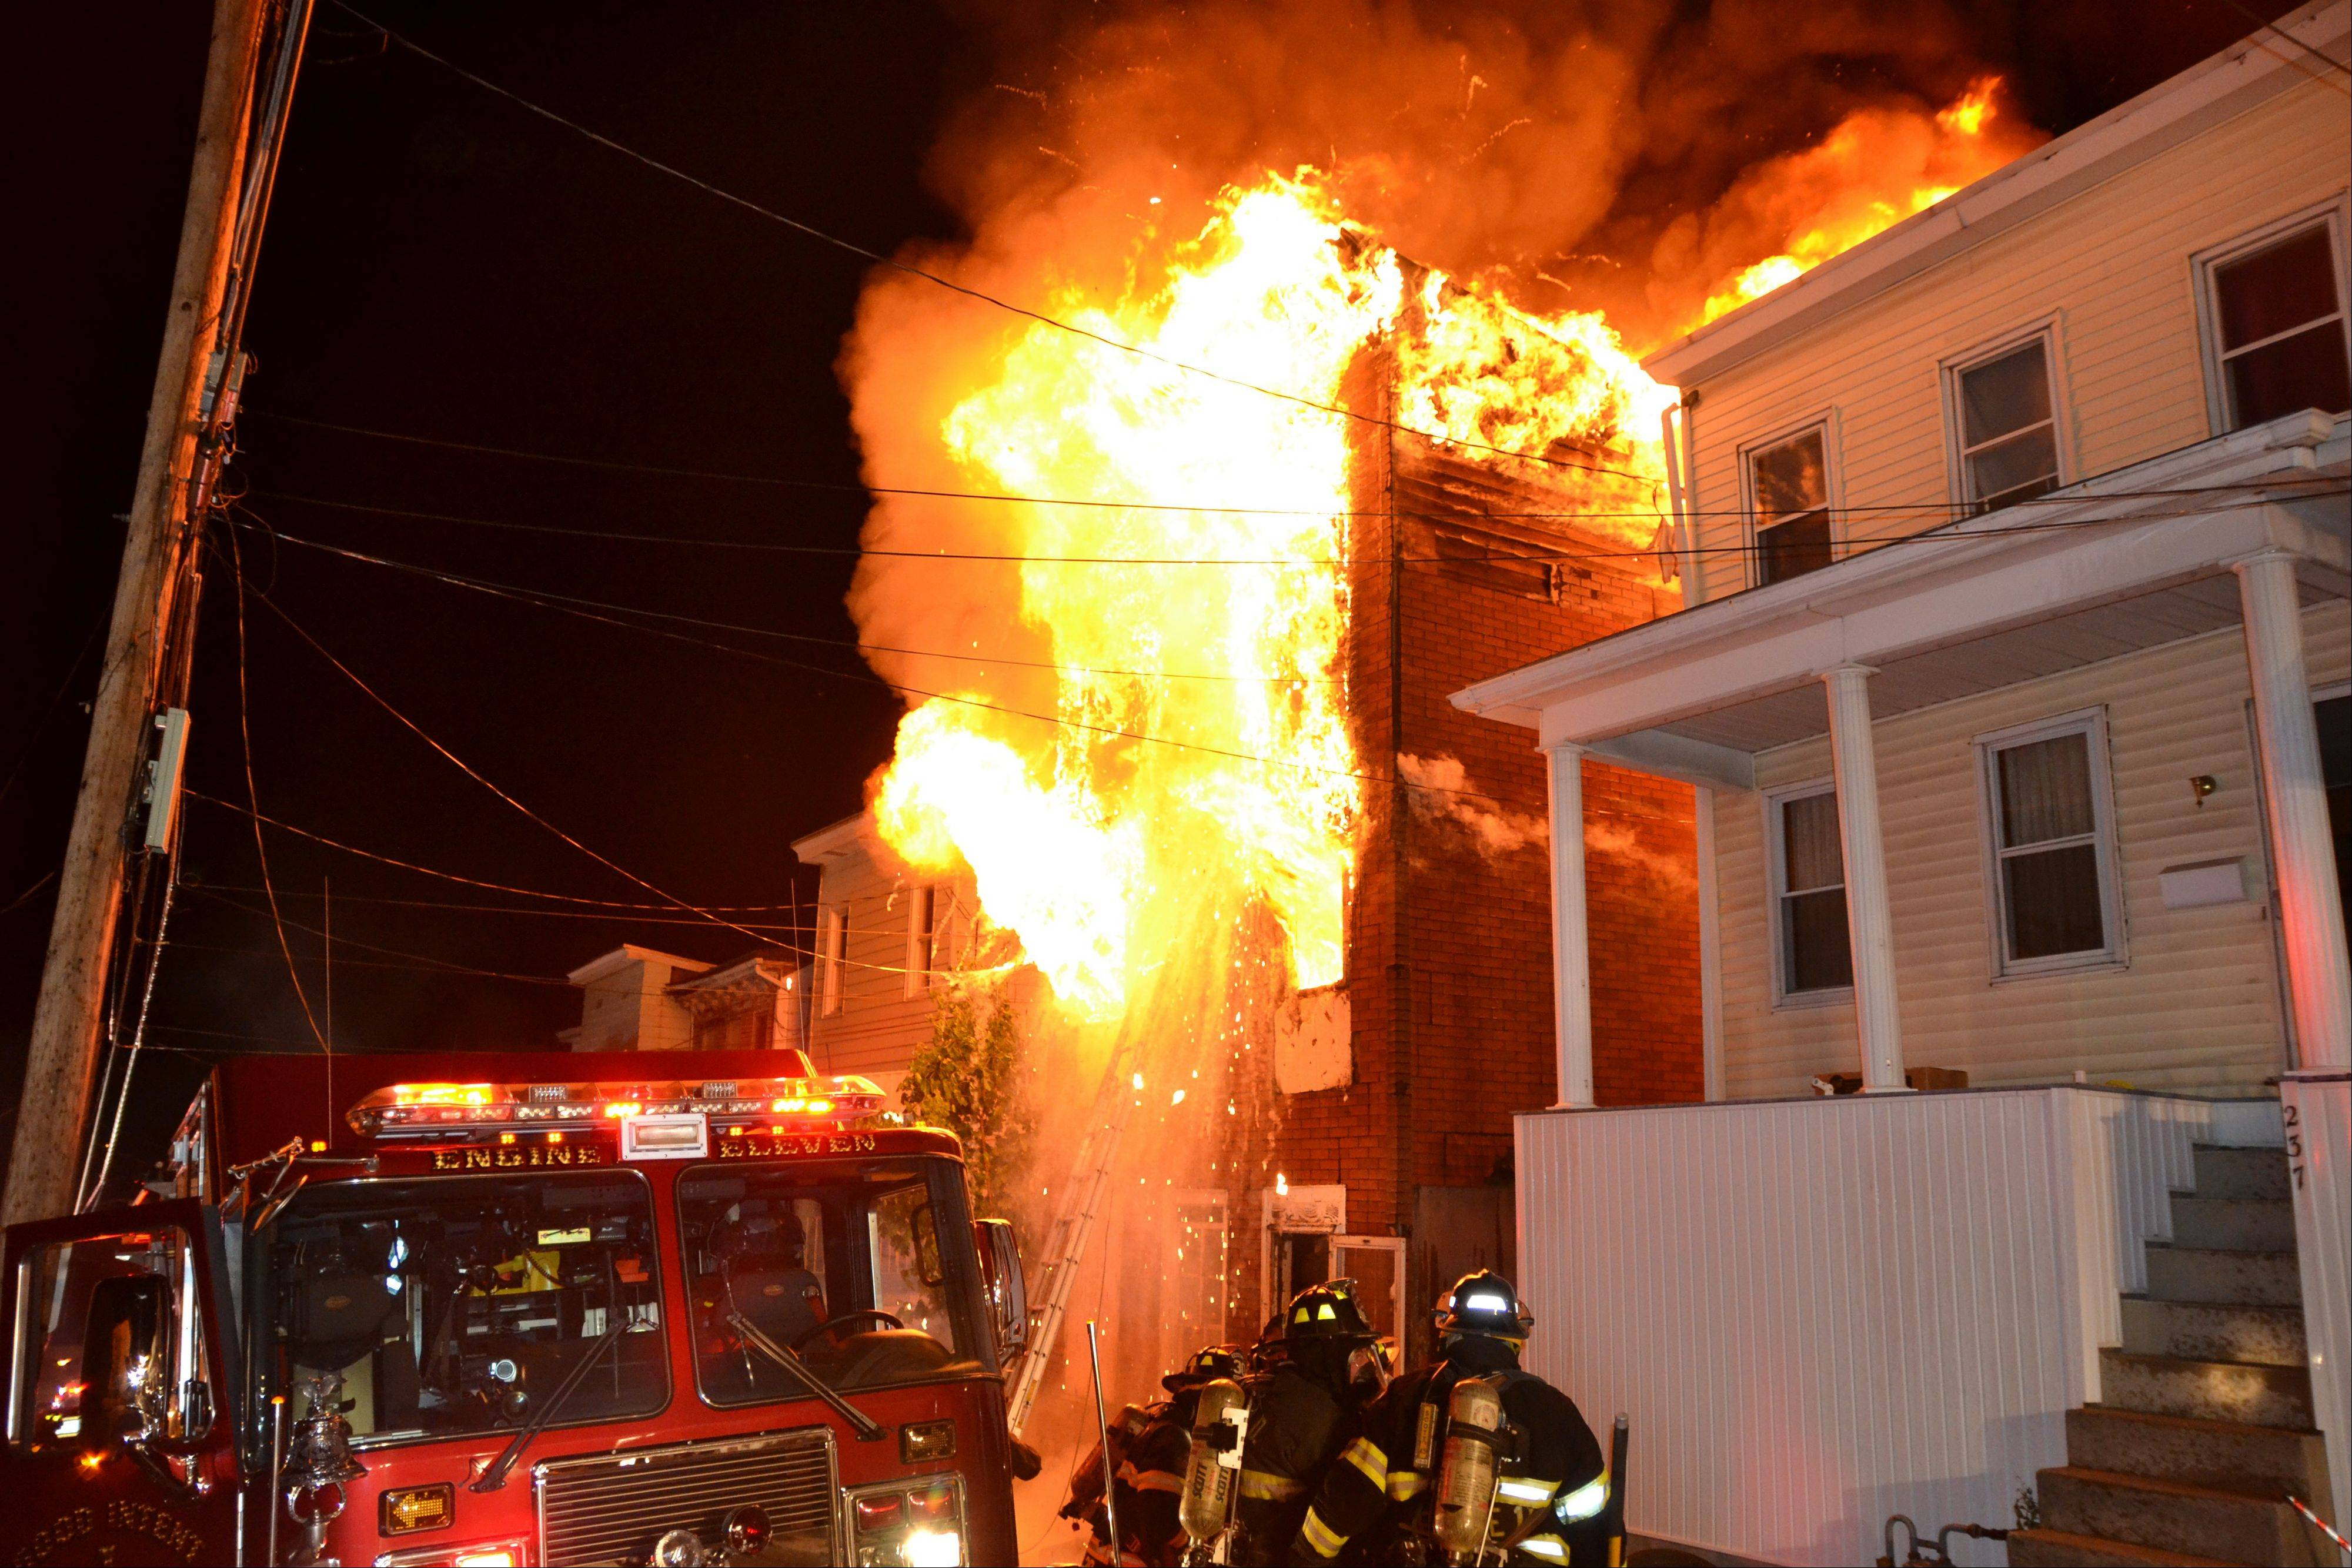 Firefighters battle an early-morning house fire that killed four children and two adults in Pottsville, Pa., Monday. The blaze broke out around 11:55 p.m. Sunday at the single-family home.